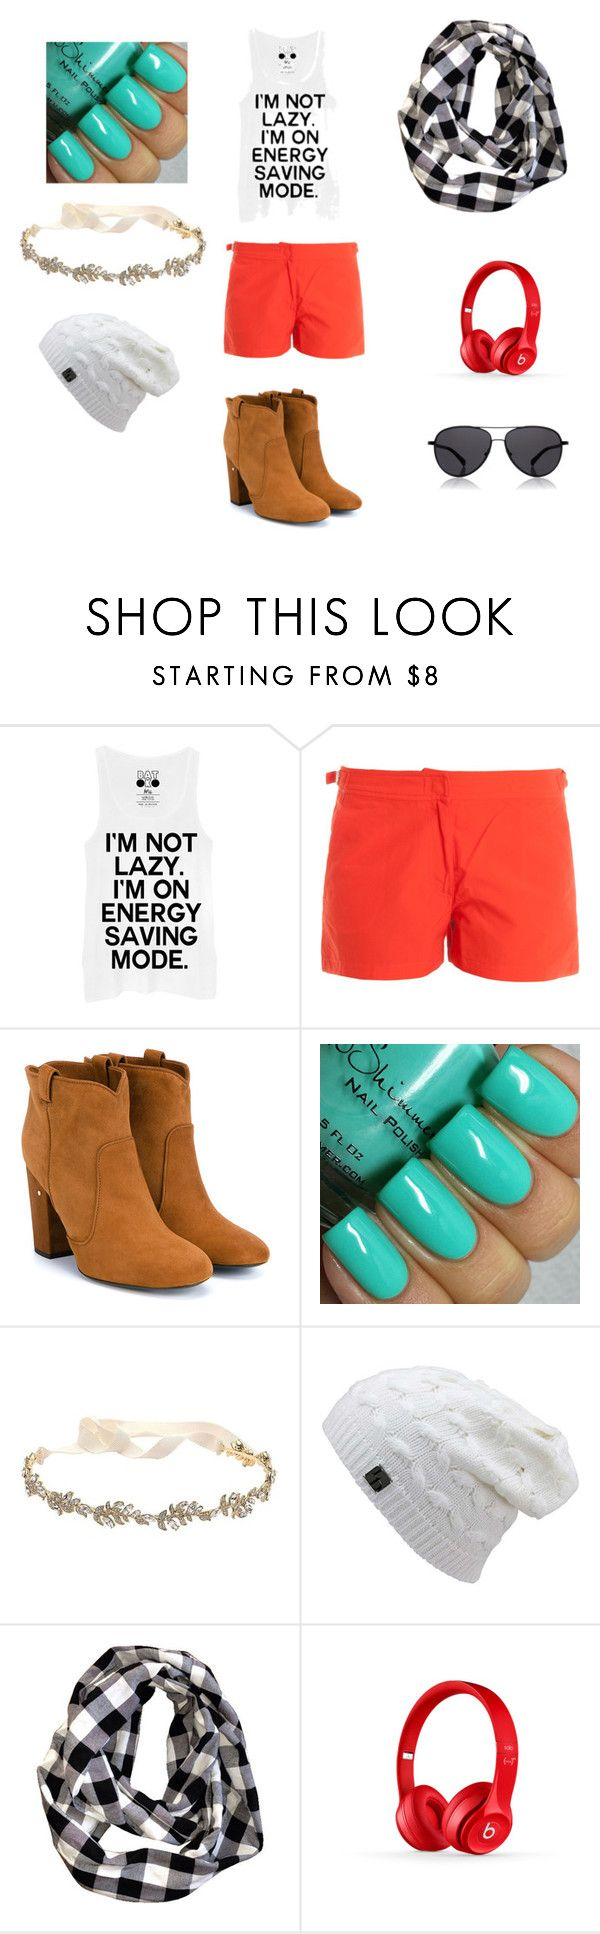 """""""Clover Jonson/ Chapter 3: You don't know what your dealing with"""" by hogwarts23 on Polyvore featuring Orlebar Brown, Laurence Dacade, Marchesa, Beats by Dr. Dre, The Row, women's clothing, women's fashion, women, female and woman"""